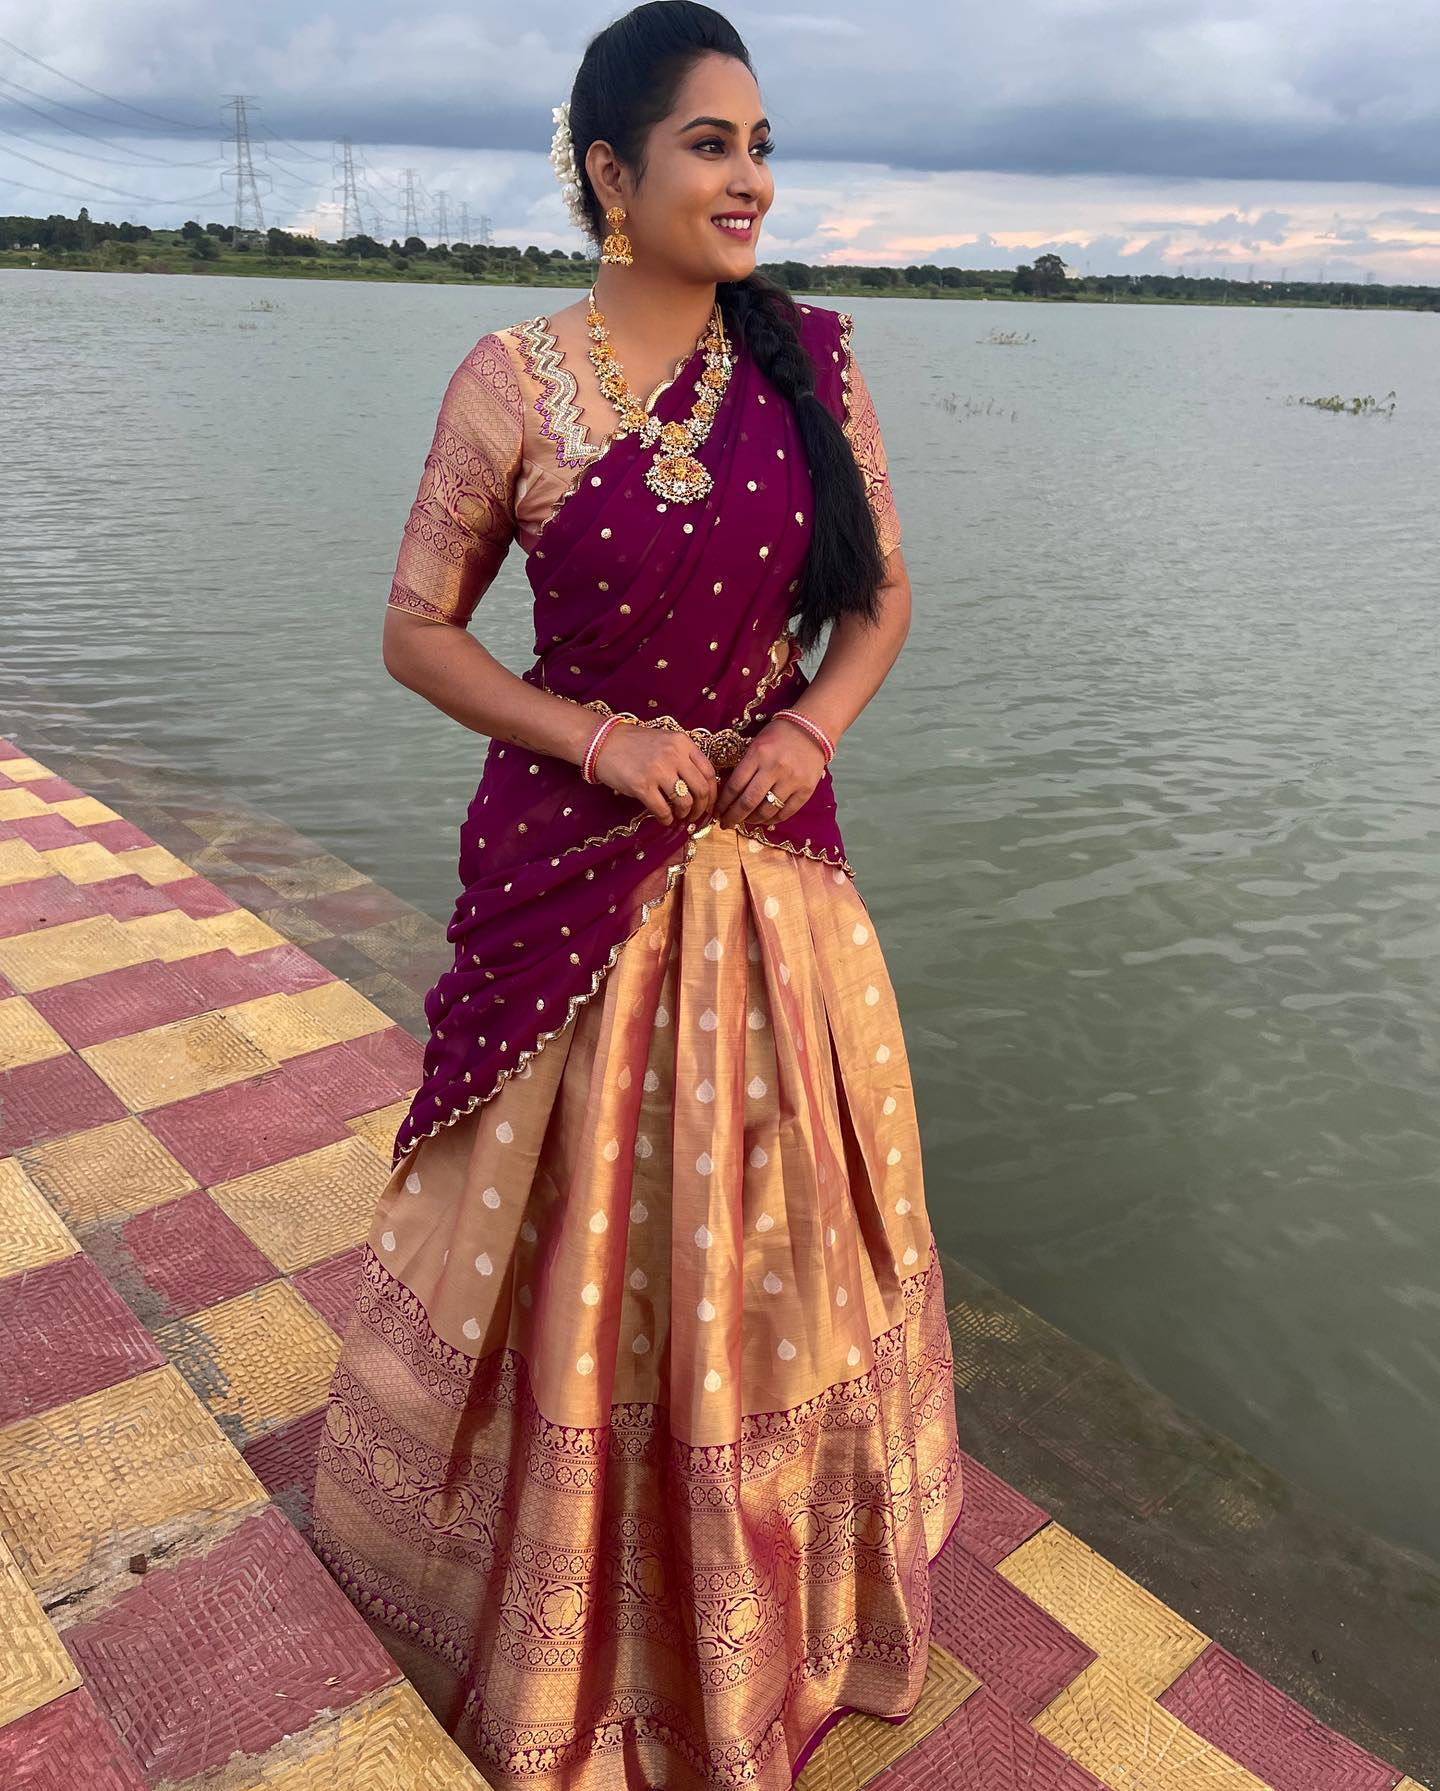 Stunning actress Himaja in off white and purple color combination traditional pattu halfsaree. 2021-10-08